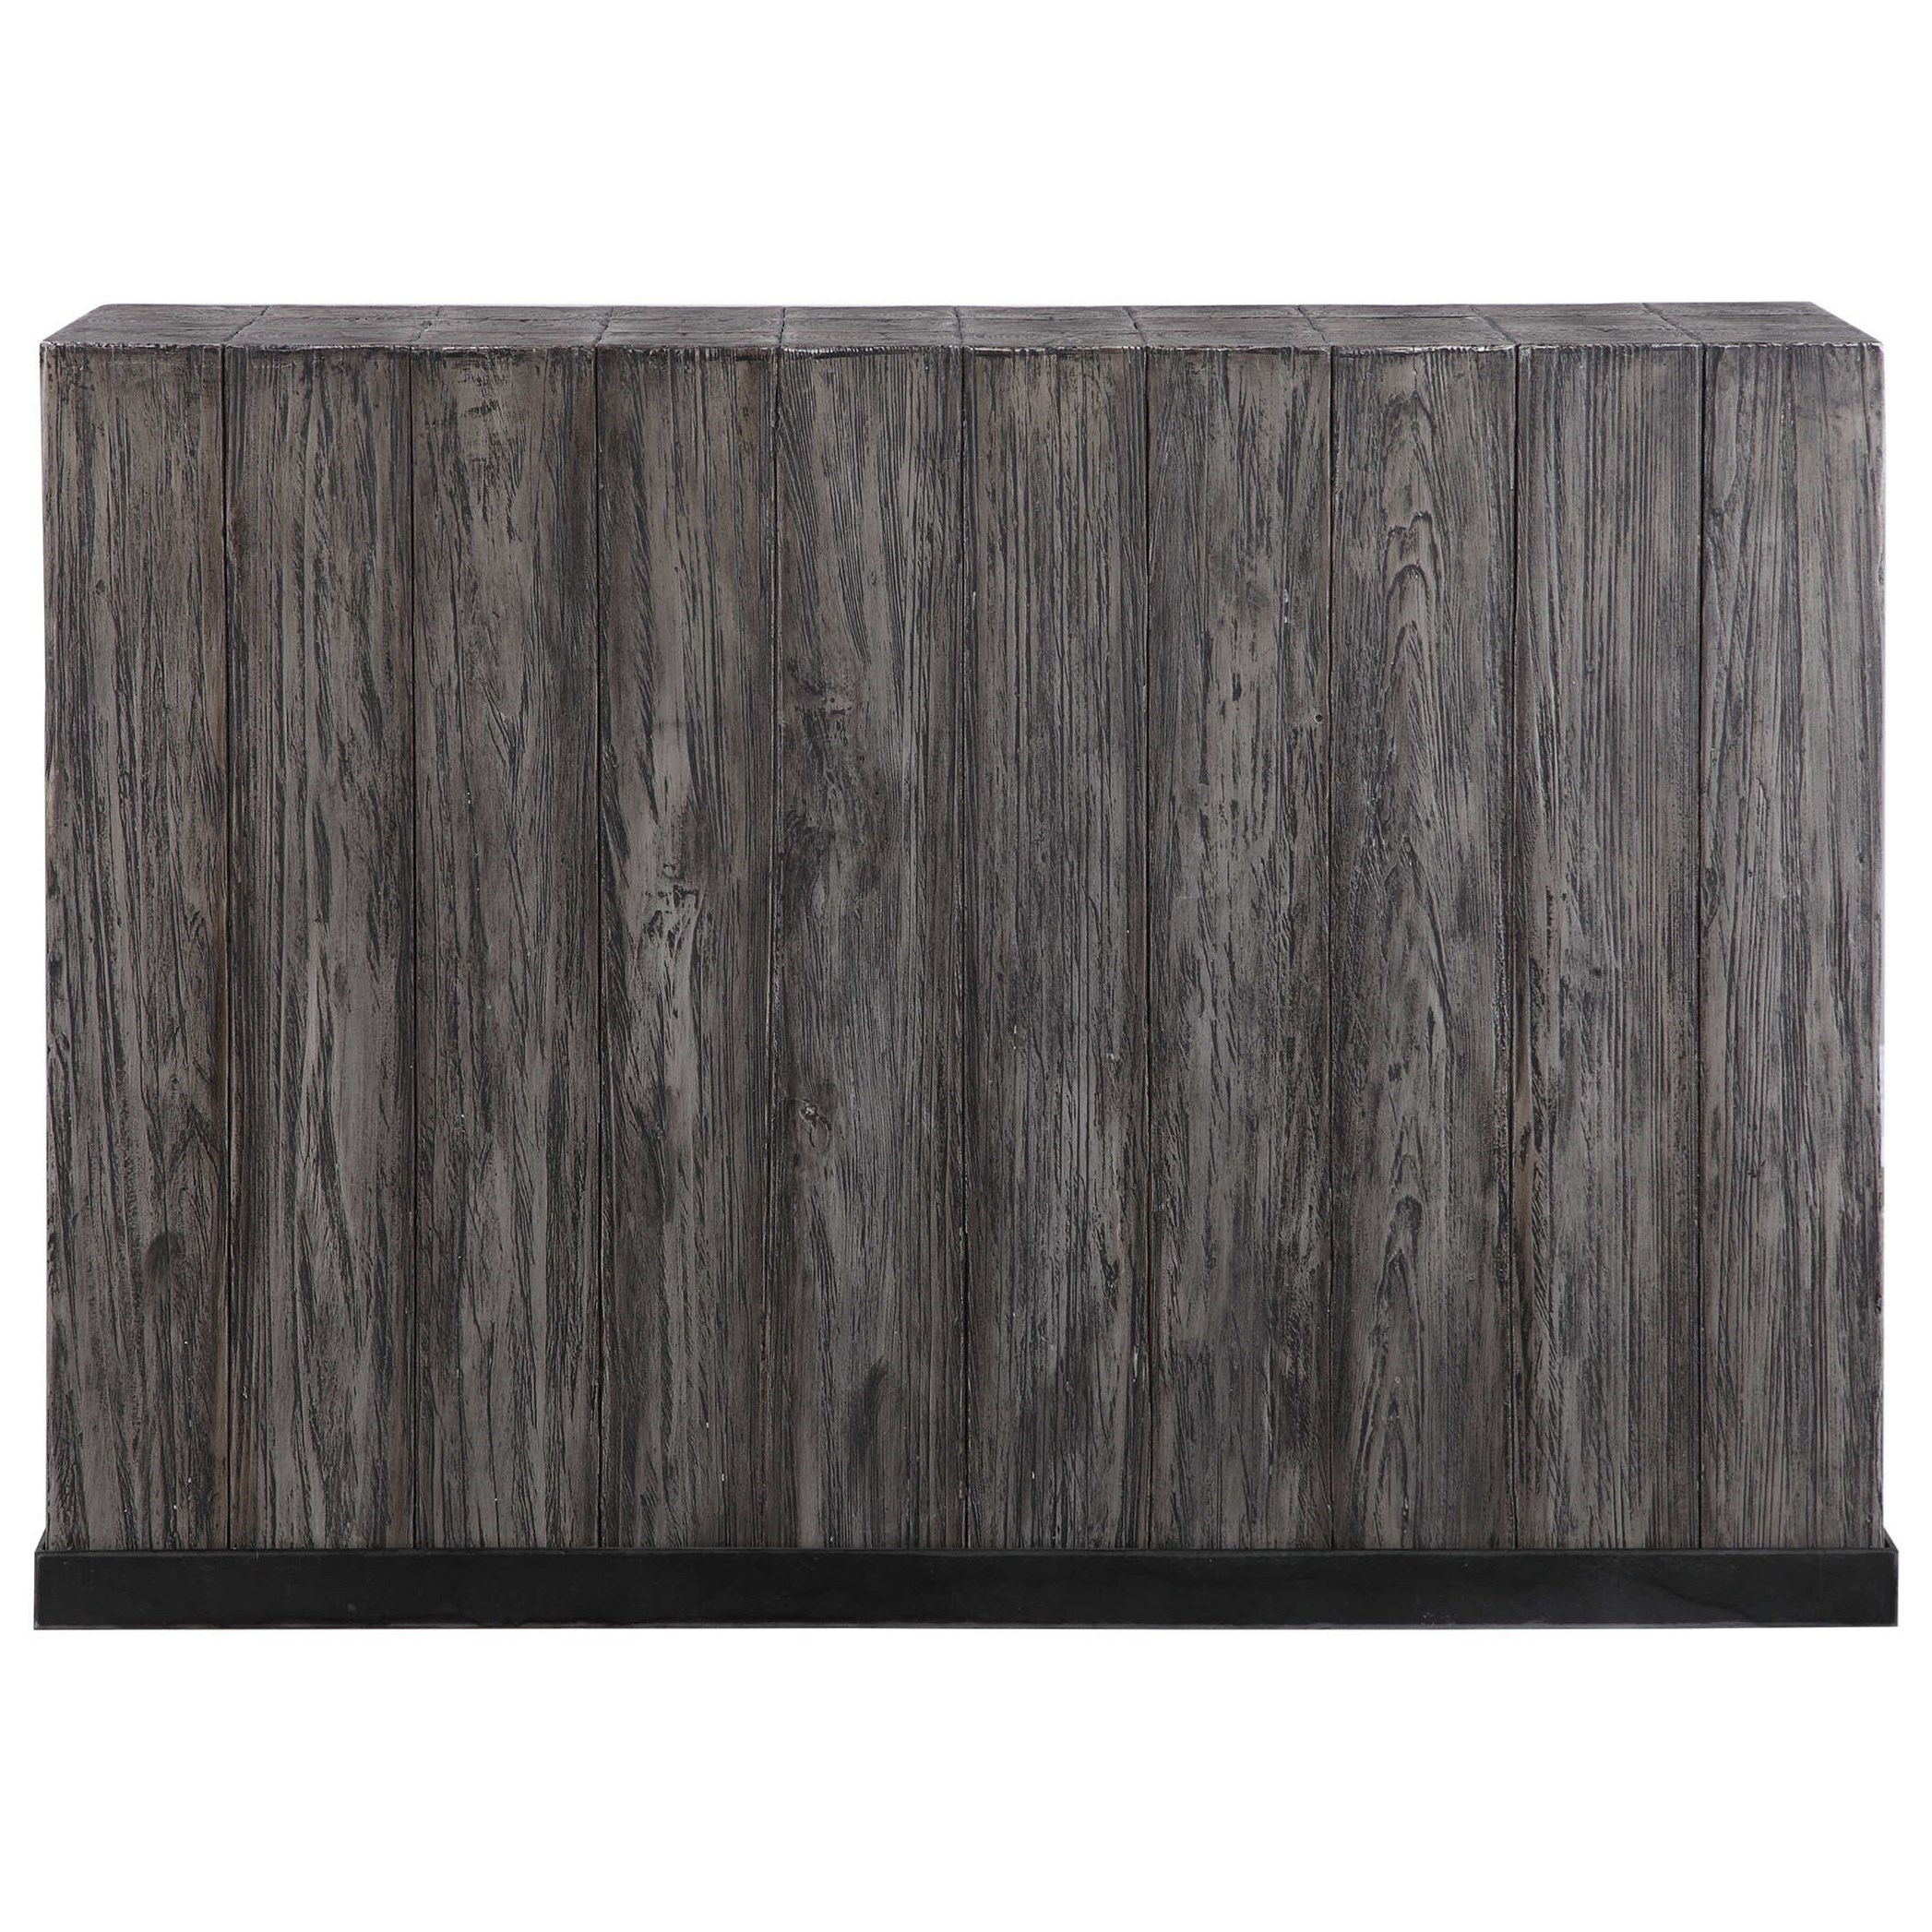 Accent Furniture - Occasional Tables Latham Reclaimed Wood Console Table by Uttermost at Factory Direct Furniture